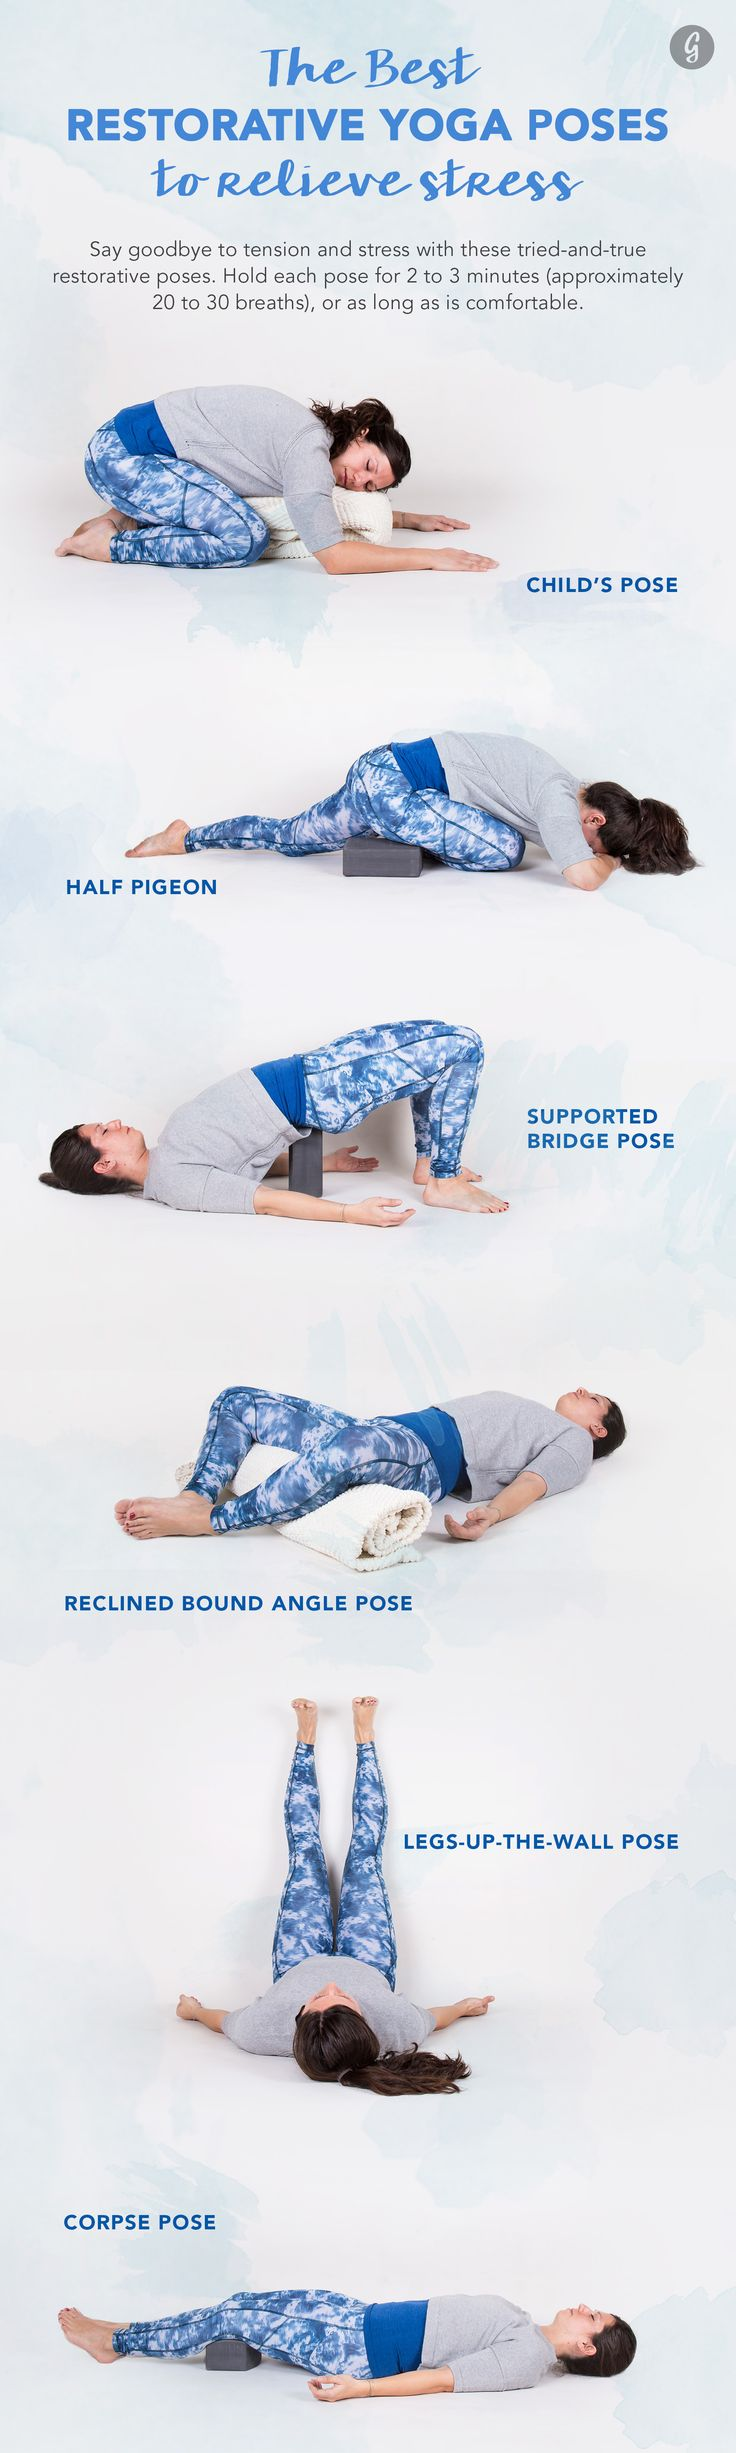 The Best Restorative Yoga Poses Nice deep breathing during this wonderful practice. #backinmotion.us